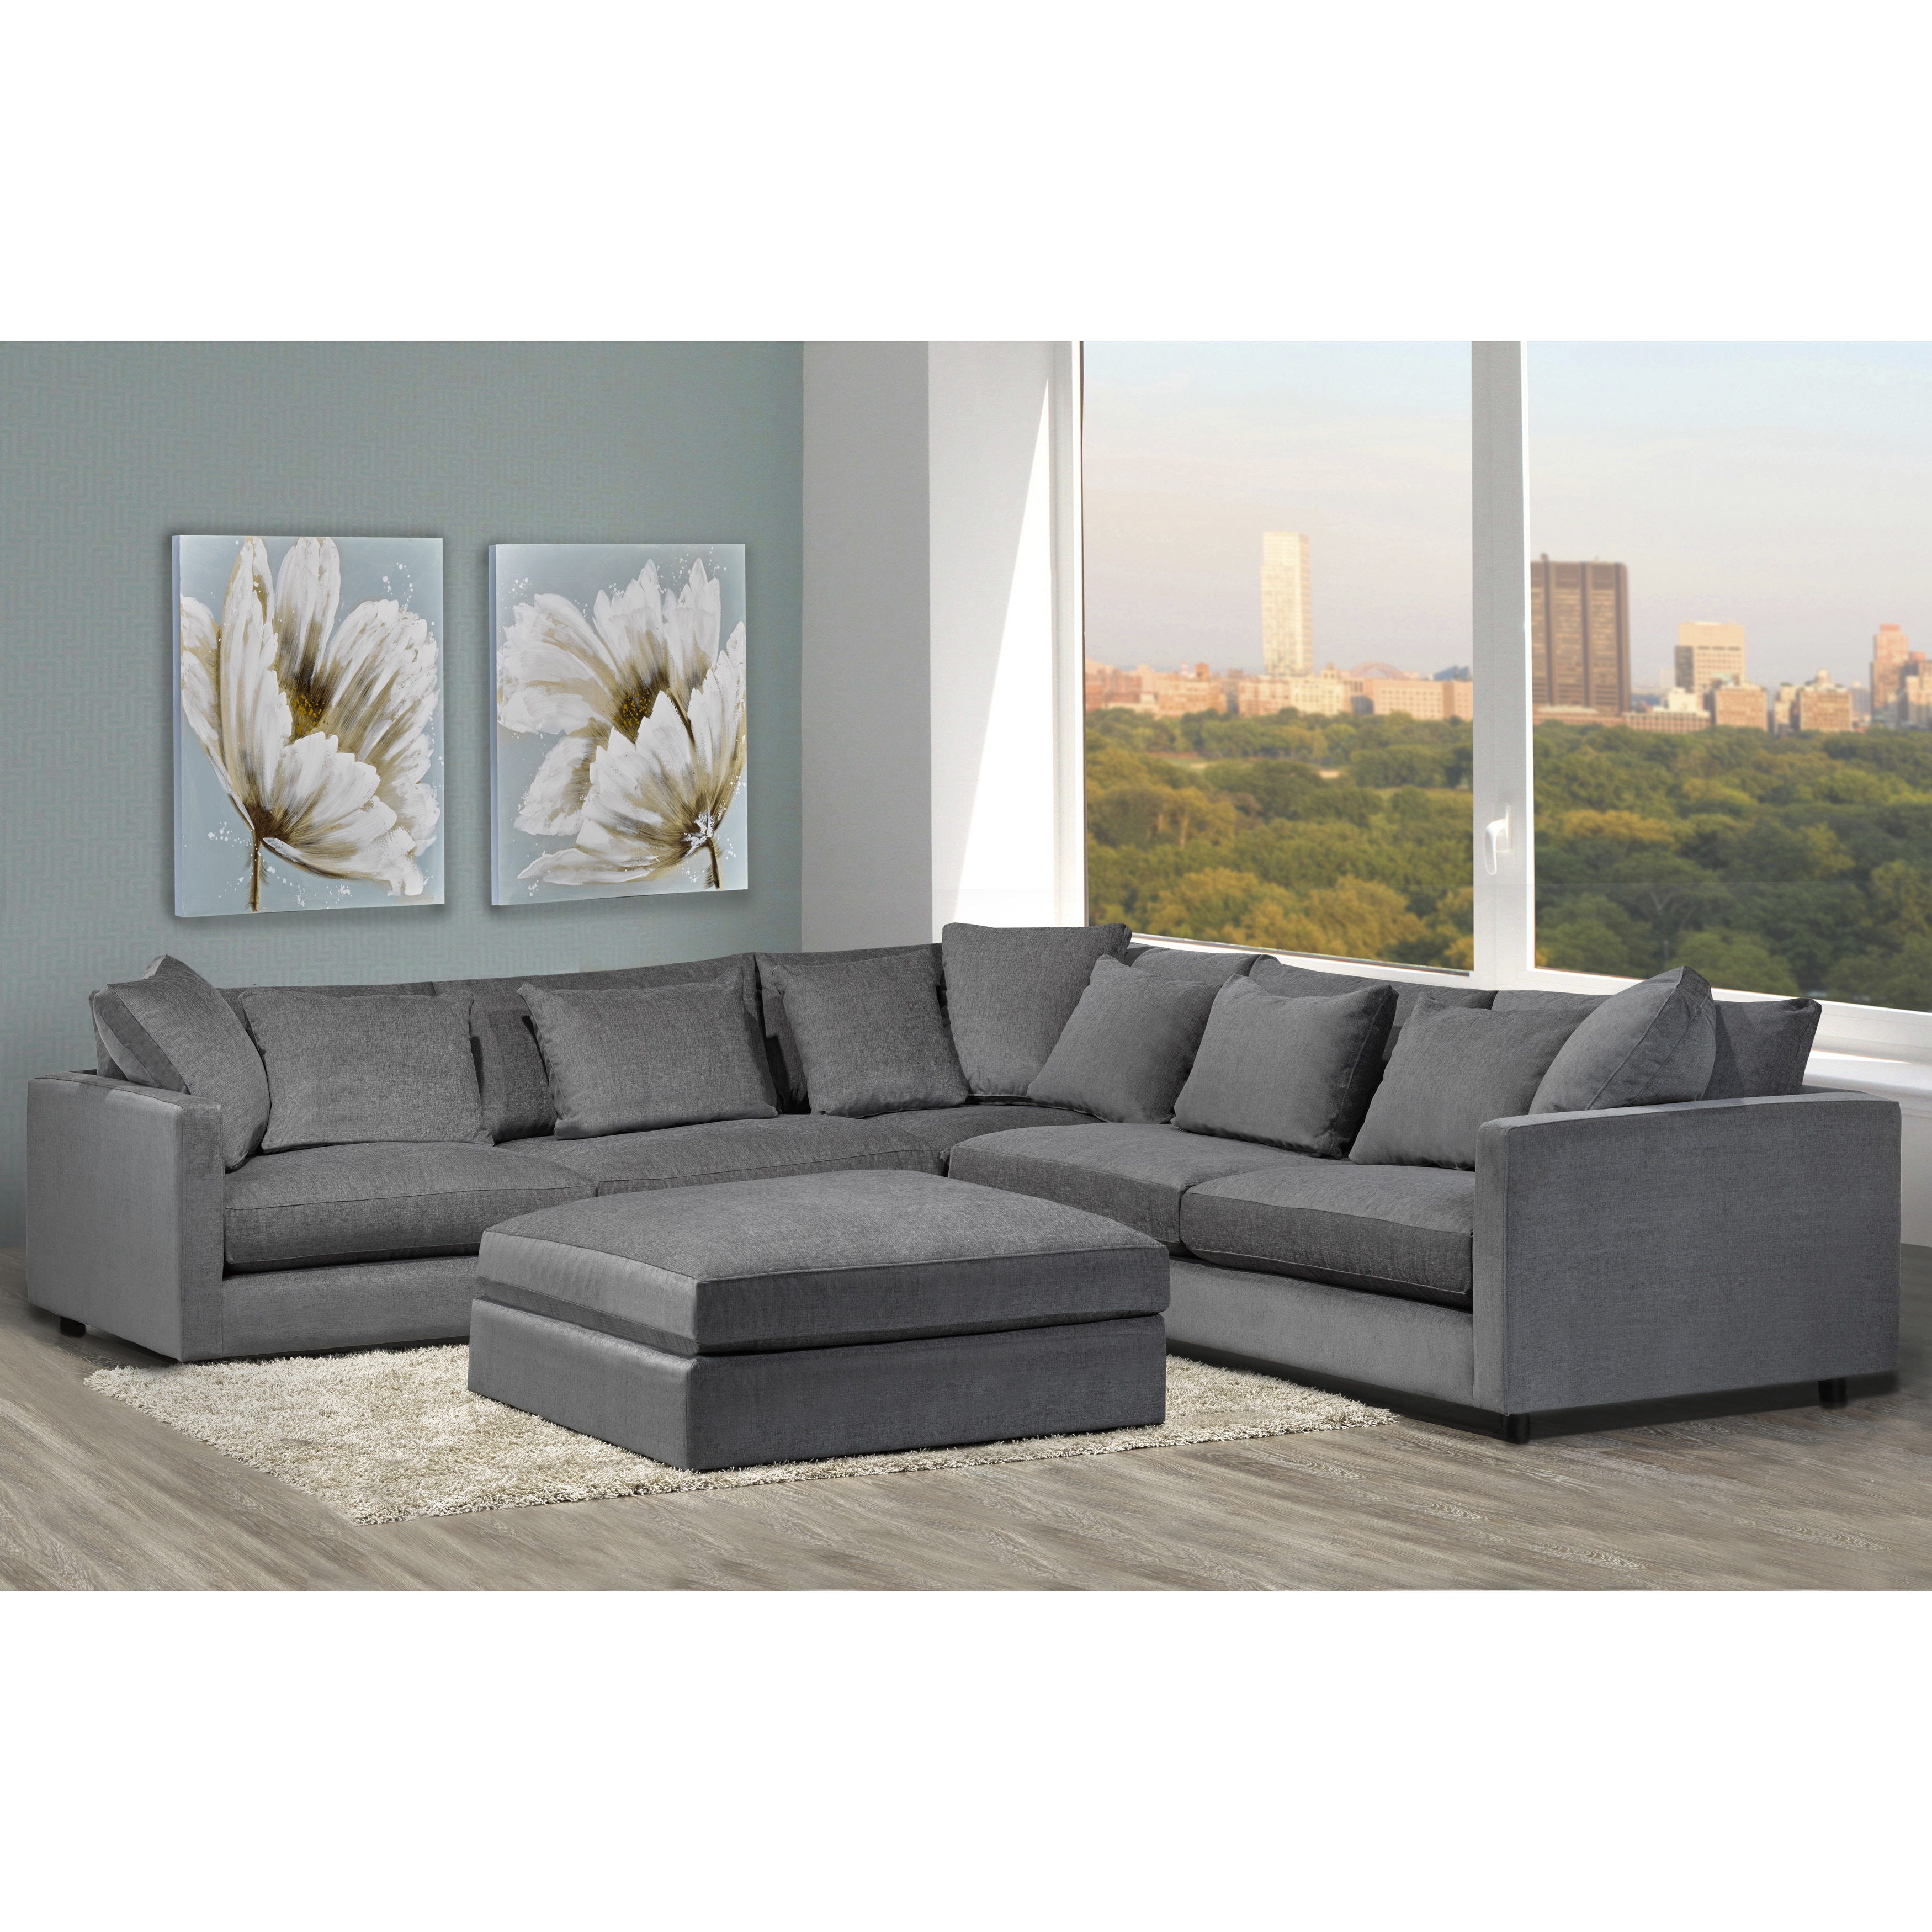 fabric north ashley fair design lsg with collections by jacksonville chaise carolina sectional casual item sofas right sofa signature place furniture pewter jessa